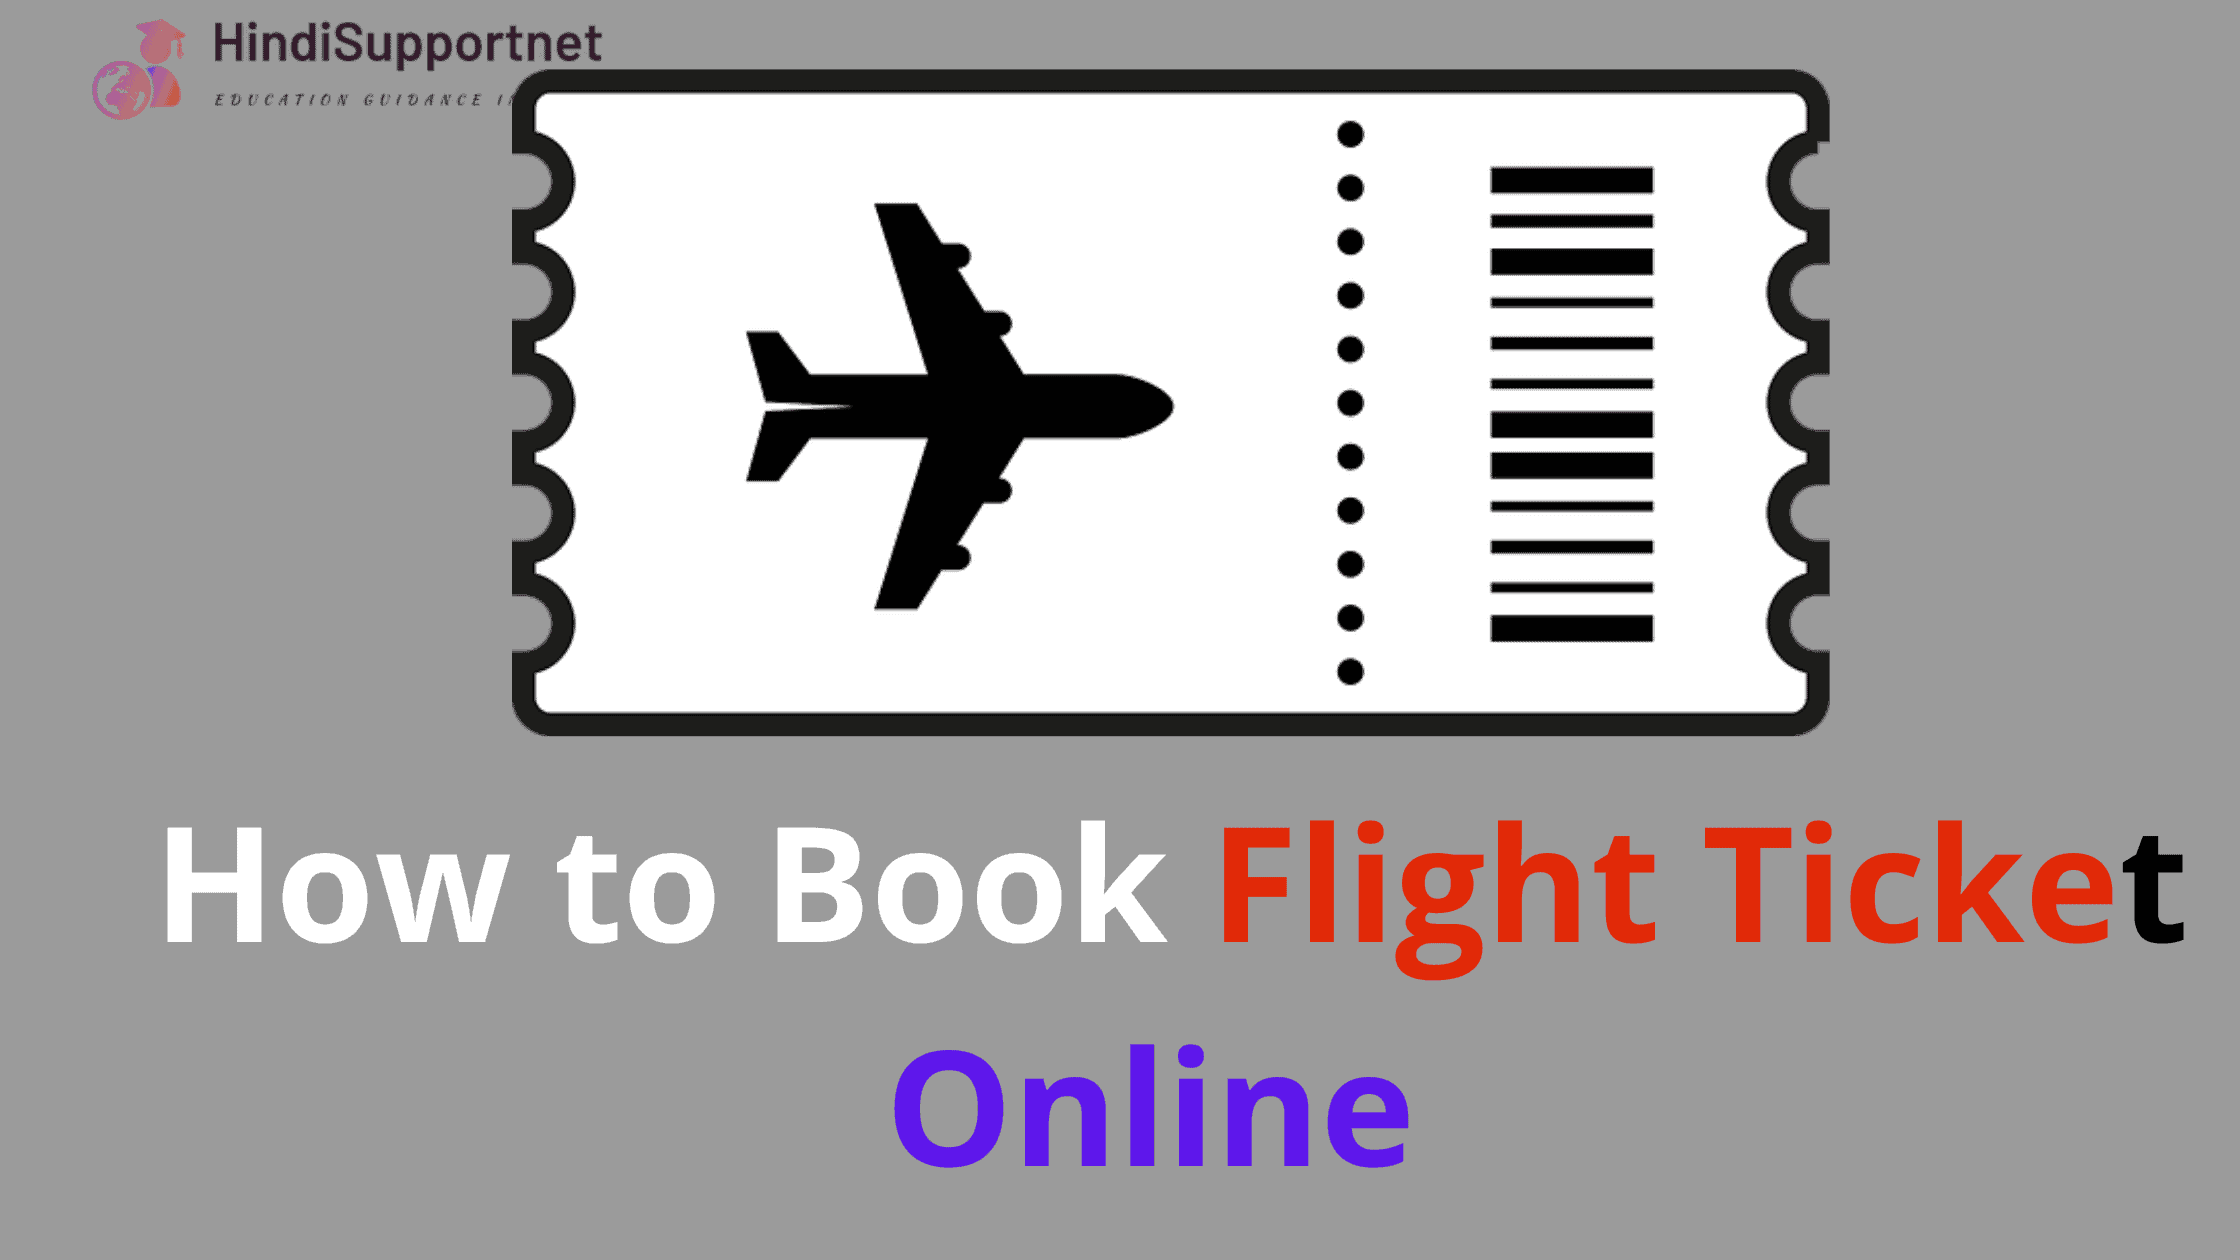 How to Book Flight Ticket Online (1)